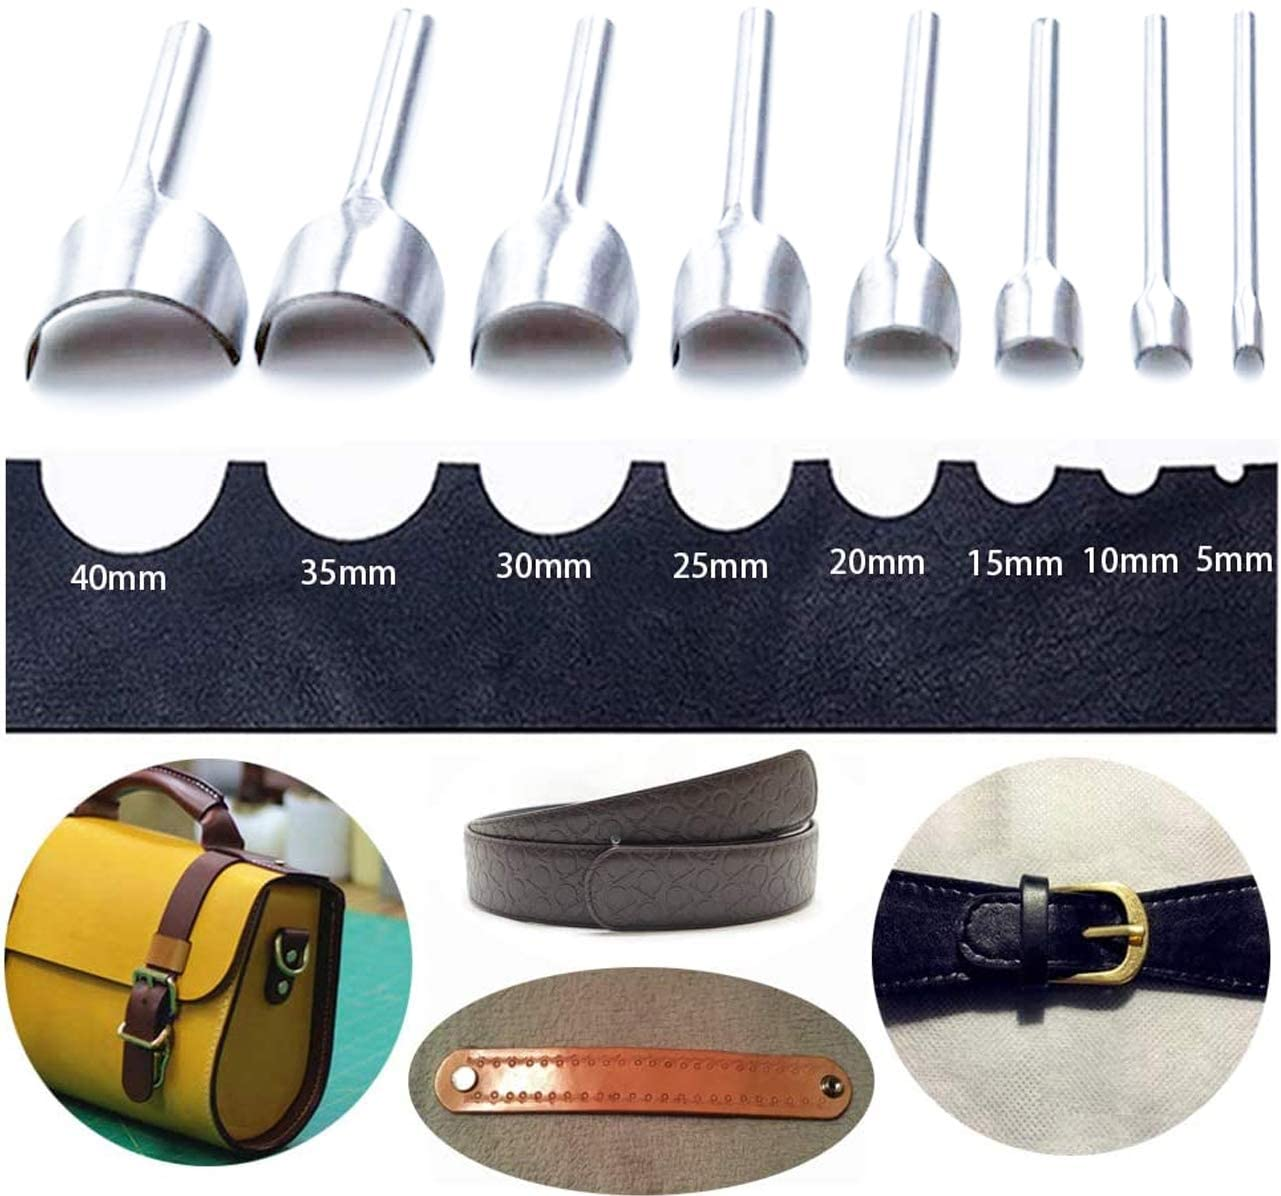 8 Pcs Leather Craft Tools Half-Round Cutter Punch Set 5-40 mm for Crafting Strap Belt DIY Craft Handwork Project